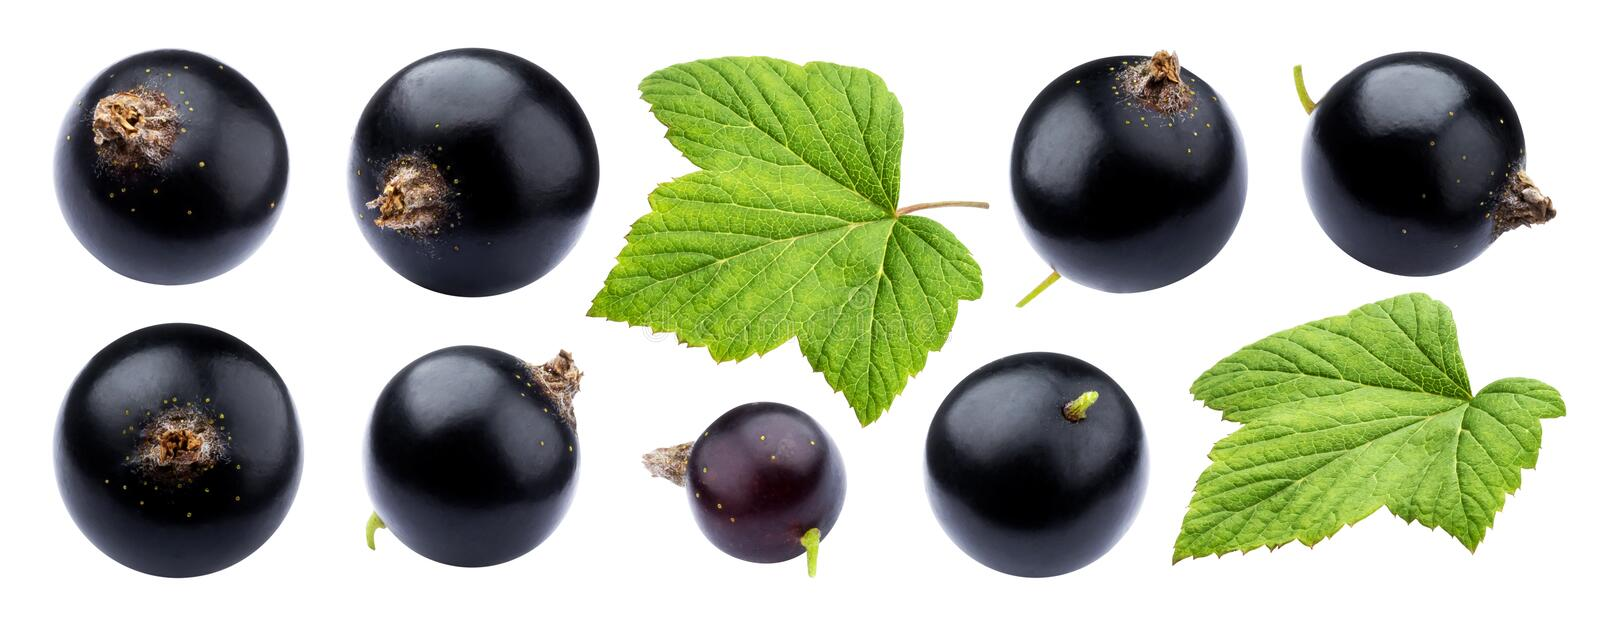 Black currant on white background royalty free stock photography